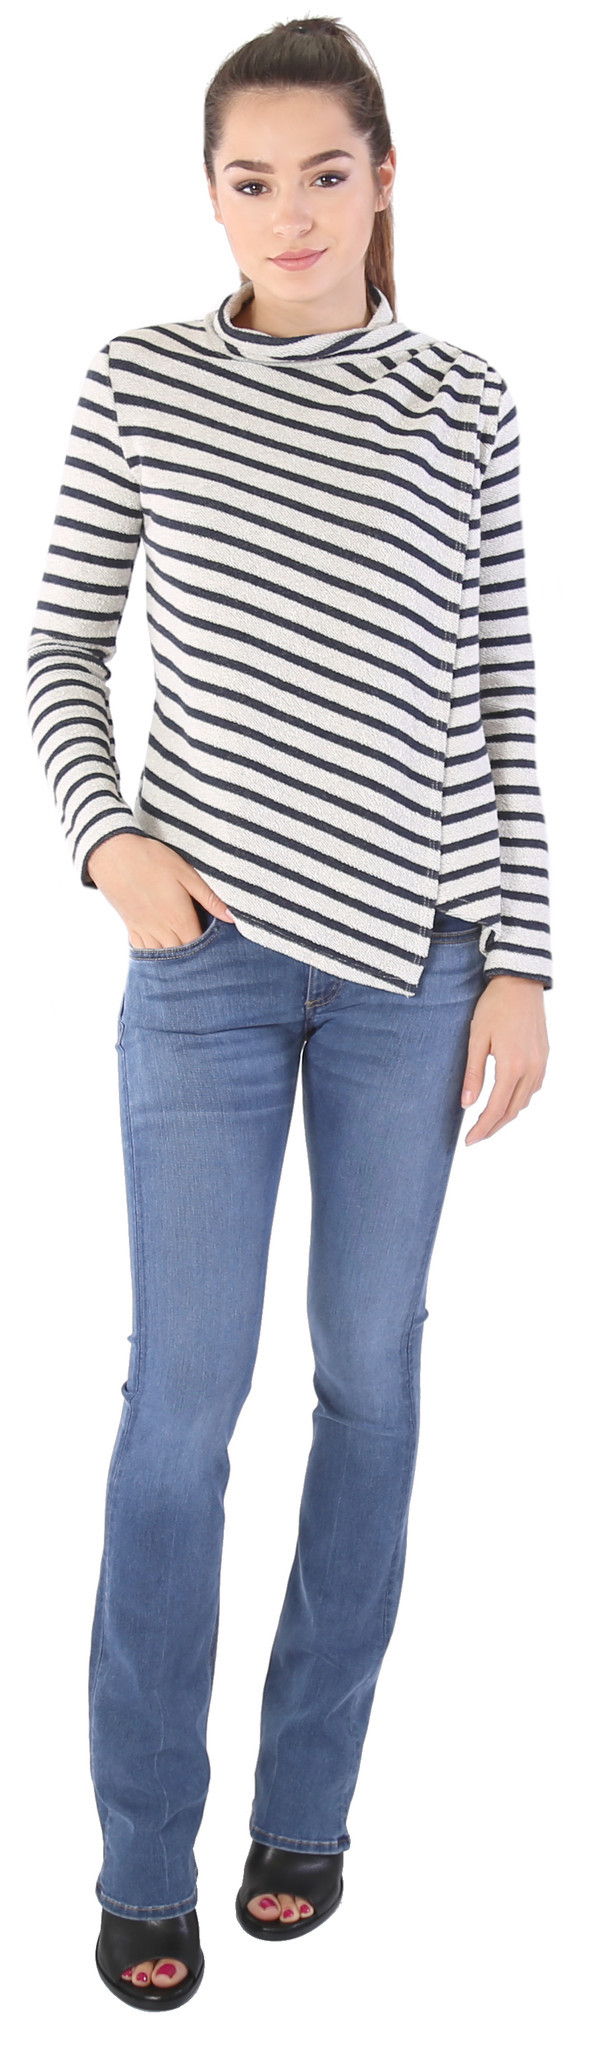 Shay & Coco Asymmetrical Zip Cardigan in White & Navy Stripe